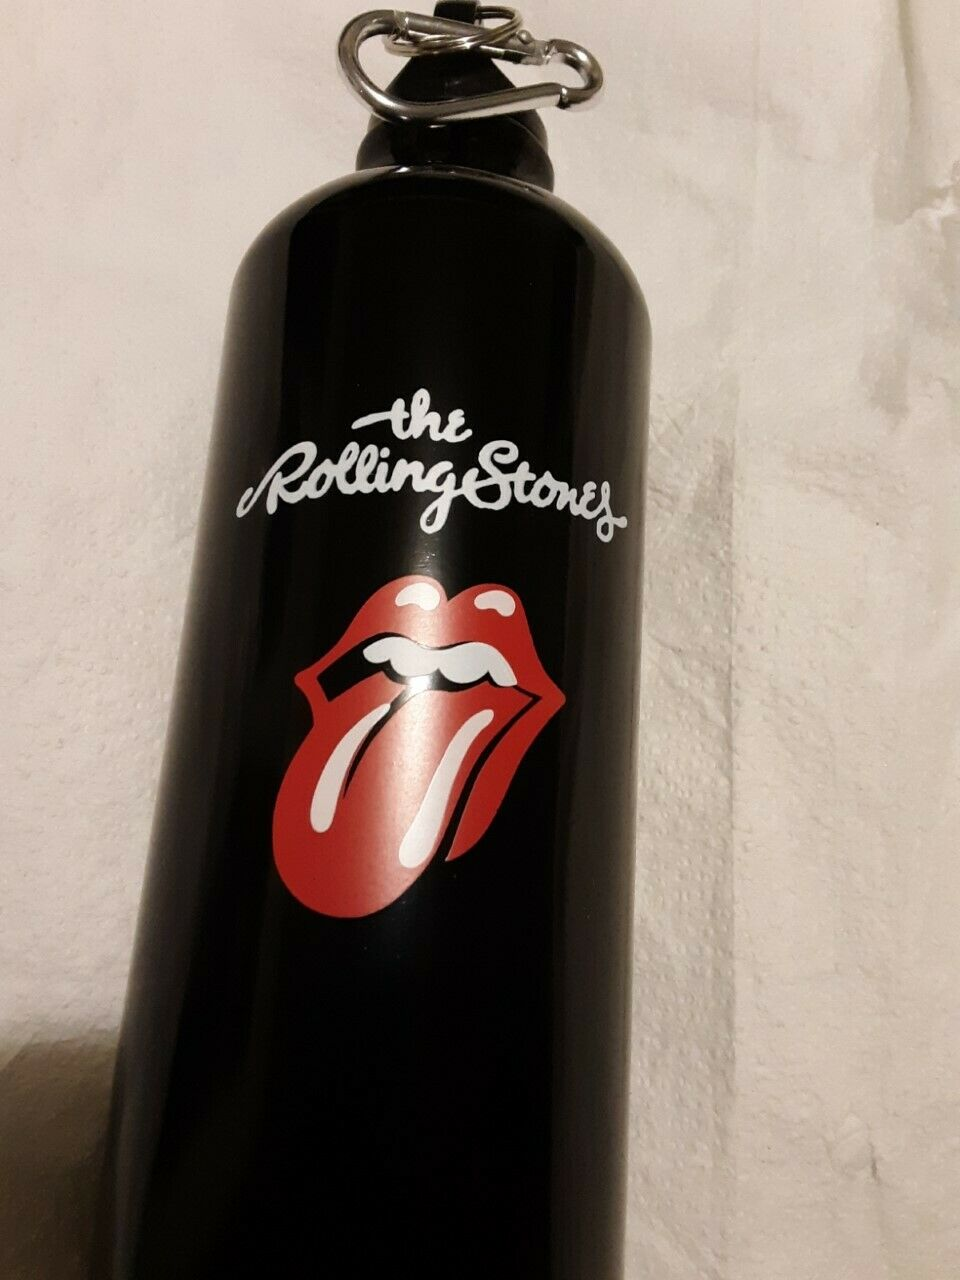 THE ROLLING STONES ALUMINIUM WATER BOTTLE - $9.99